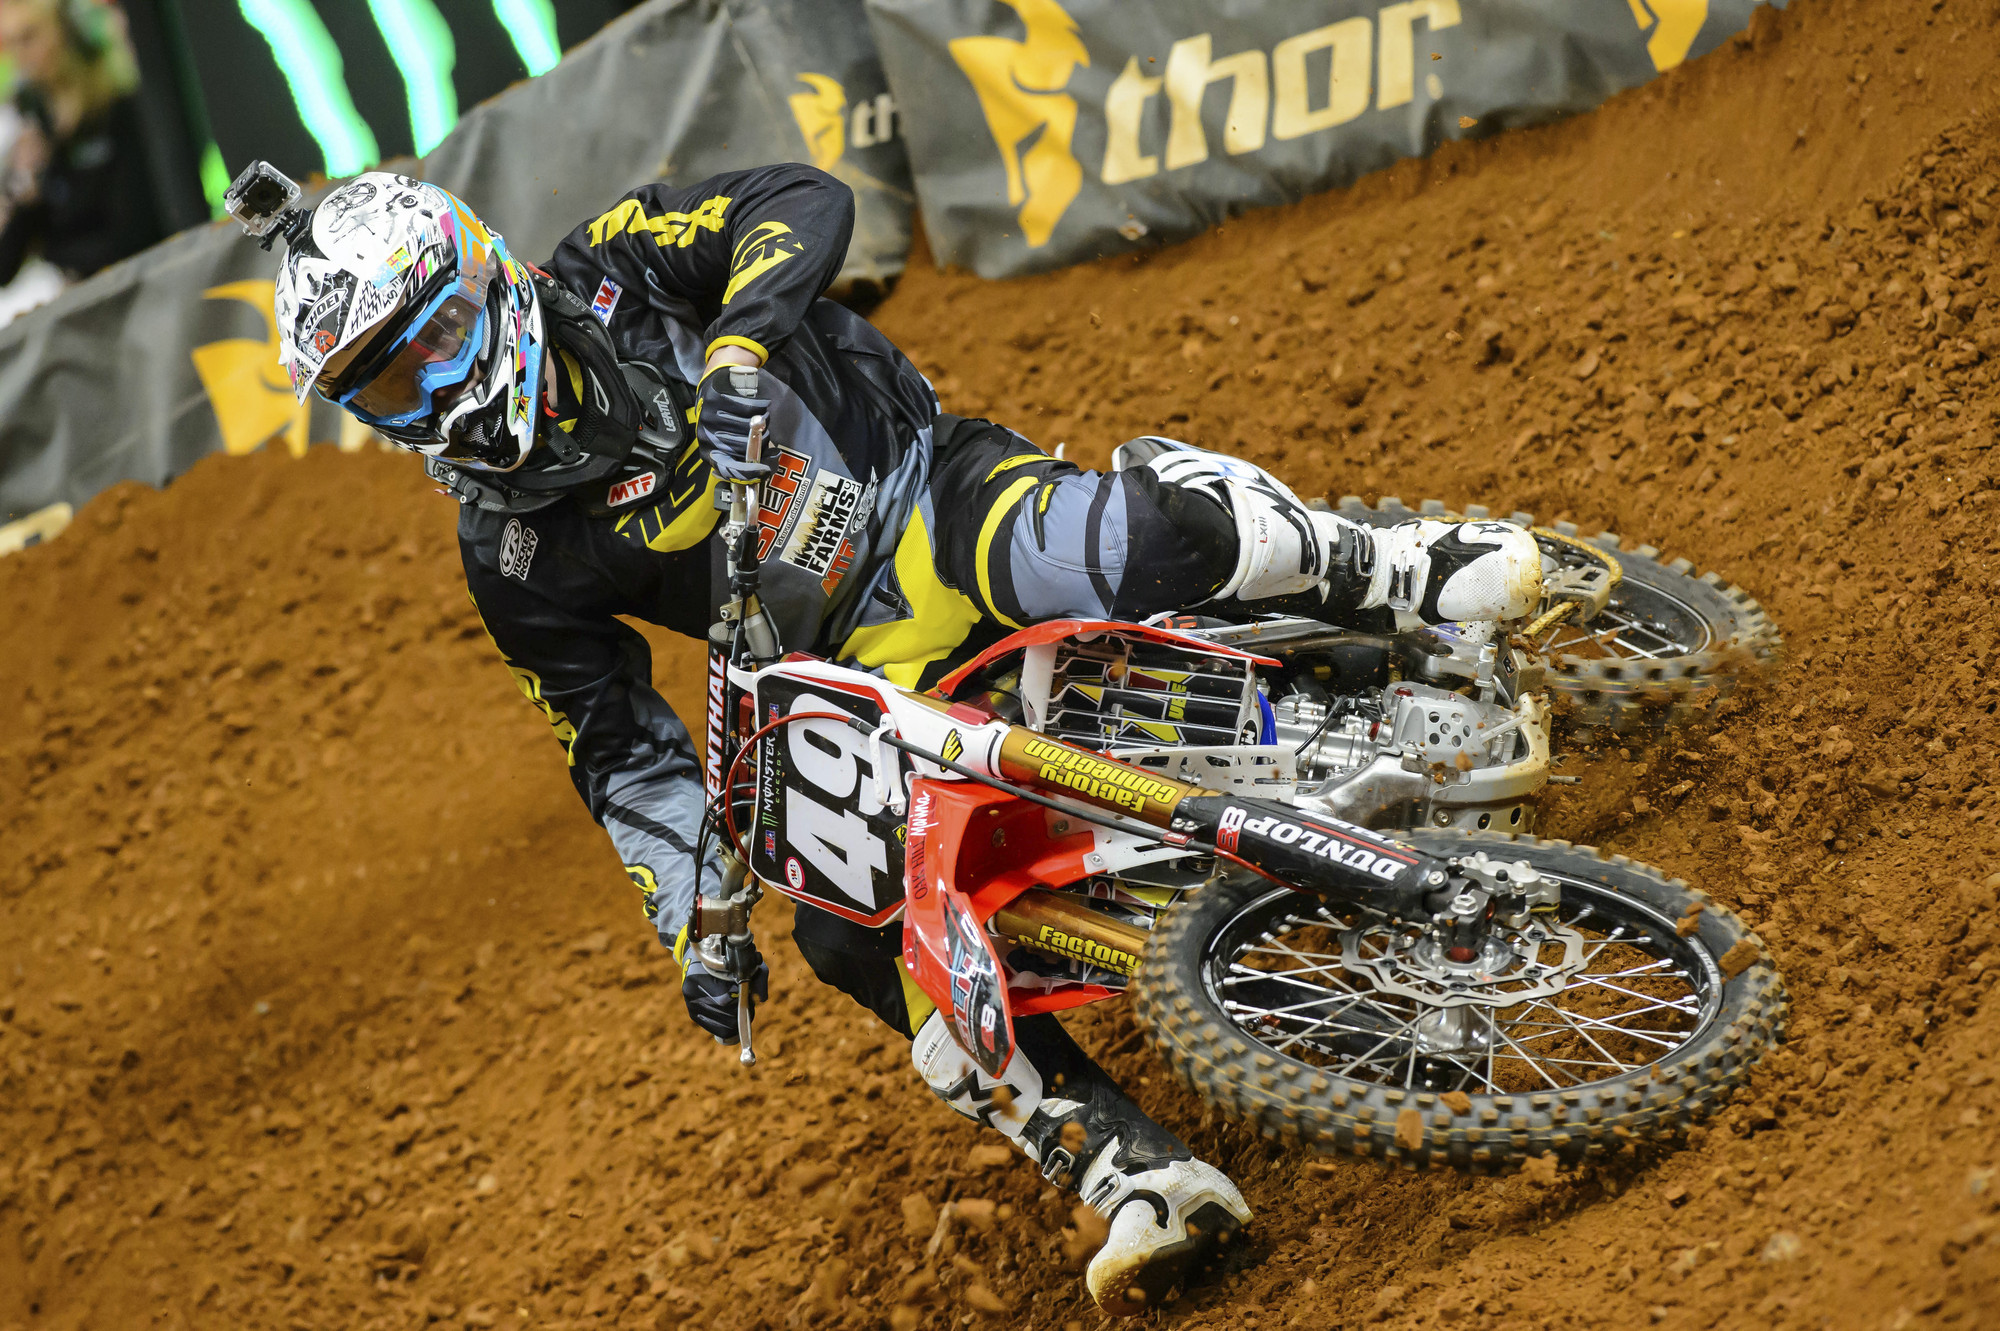 Faith-AtlantaSX_News_2014_MOTOSPORTS_SCOTT Sports_EN.jpg